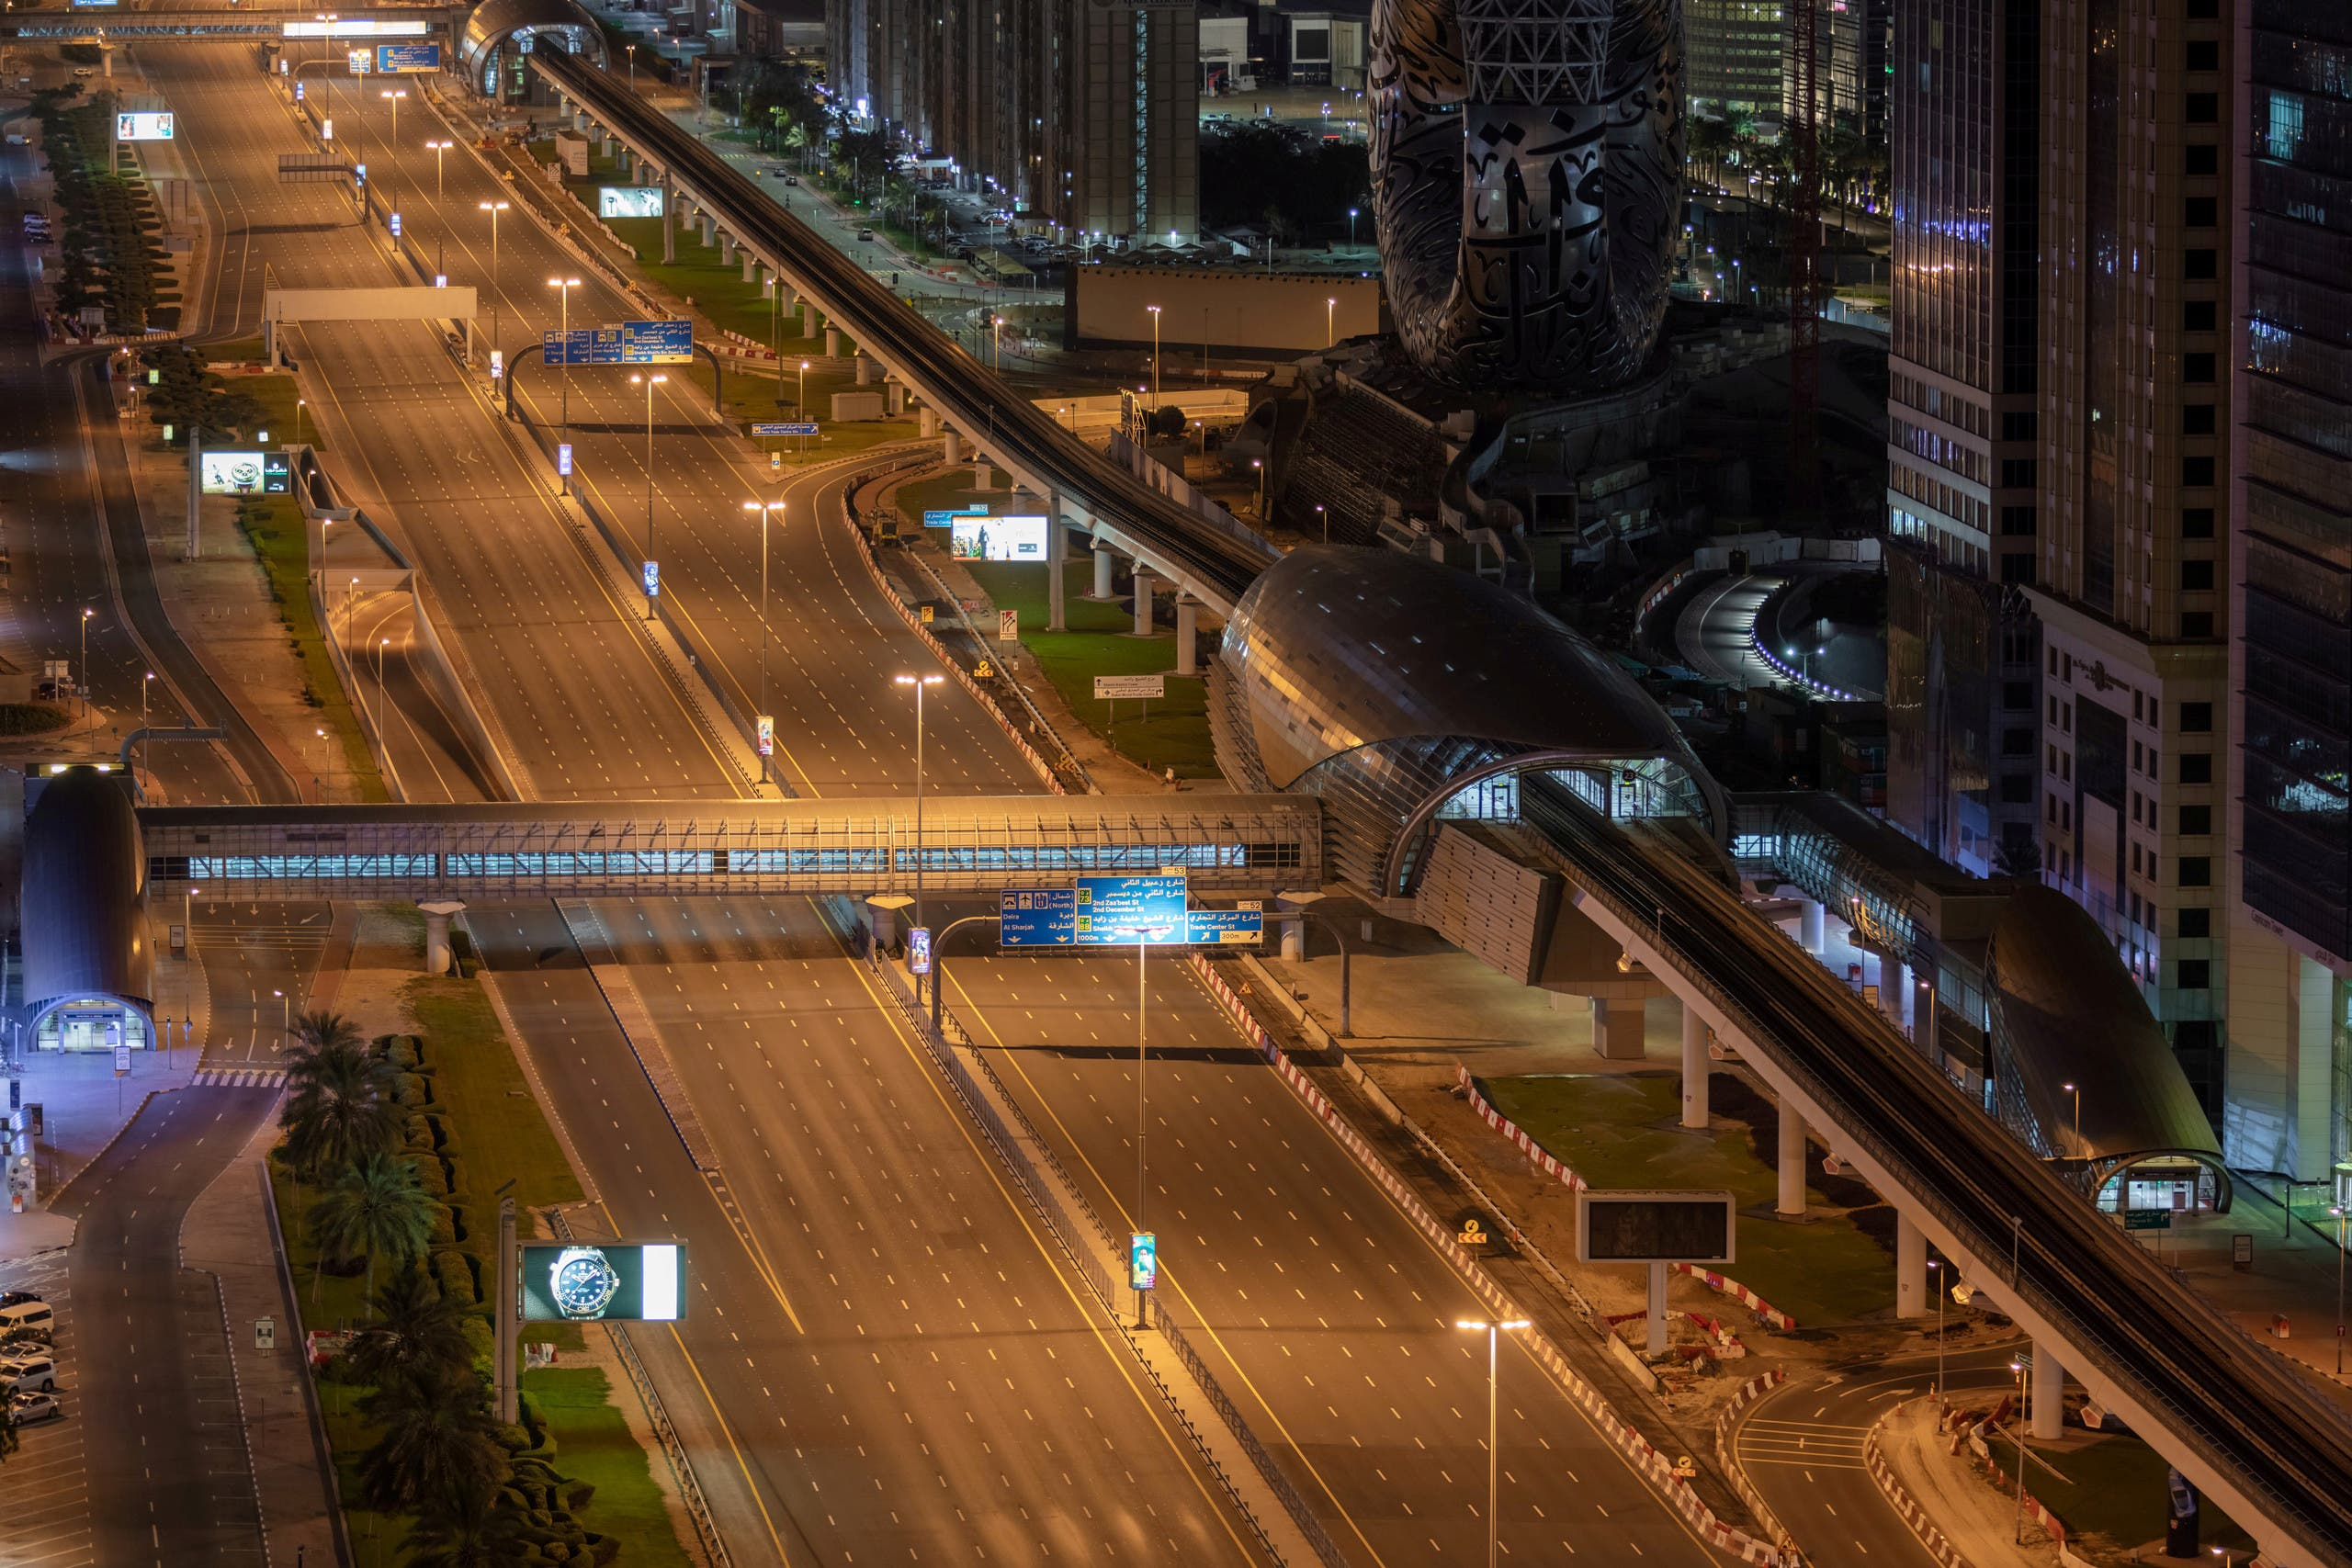 Sheikh Zayed Road, one of the main roads in Dubai, empty under lockdown. (Reuters)